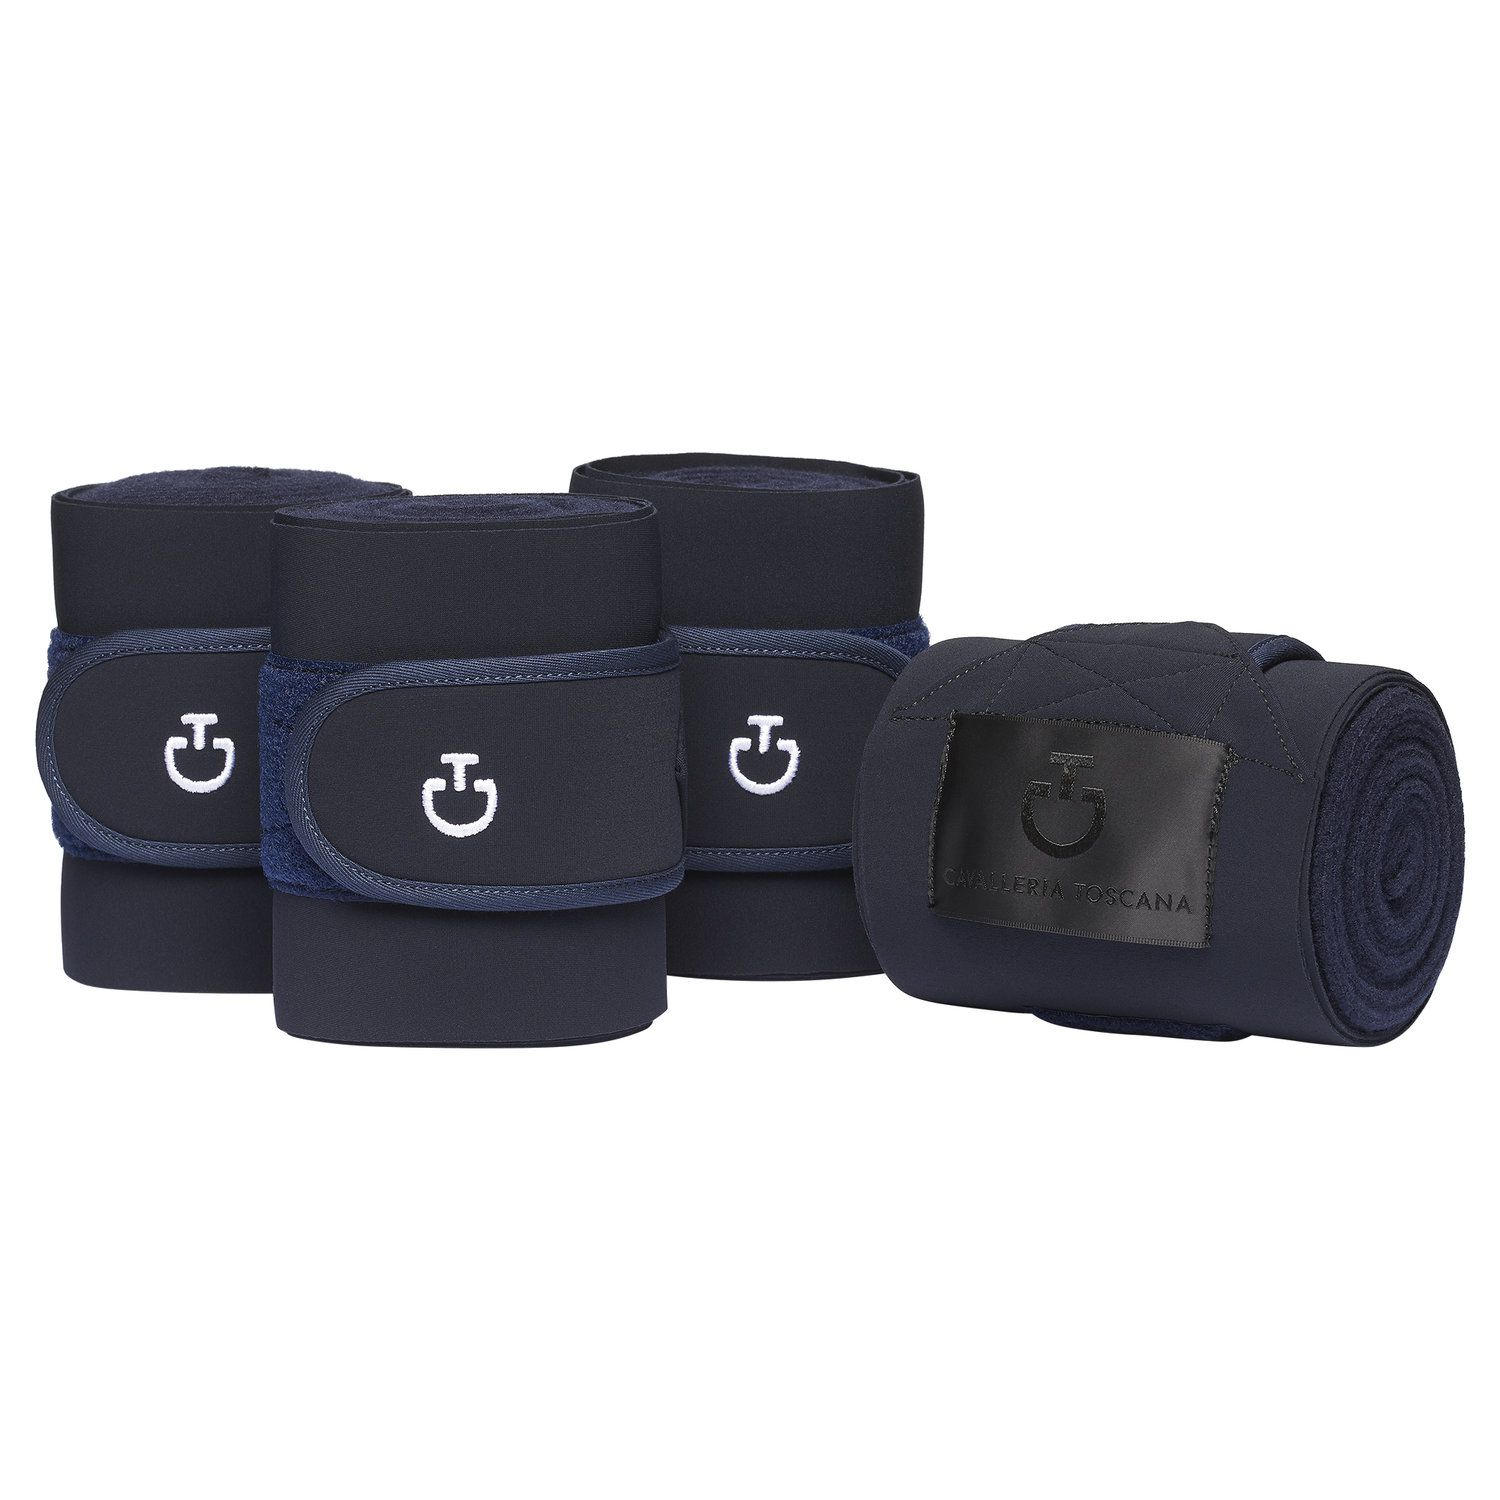 Set of 4 jersey and fleece bandages.